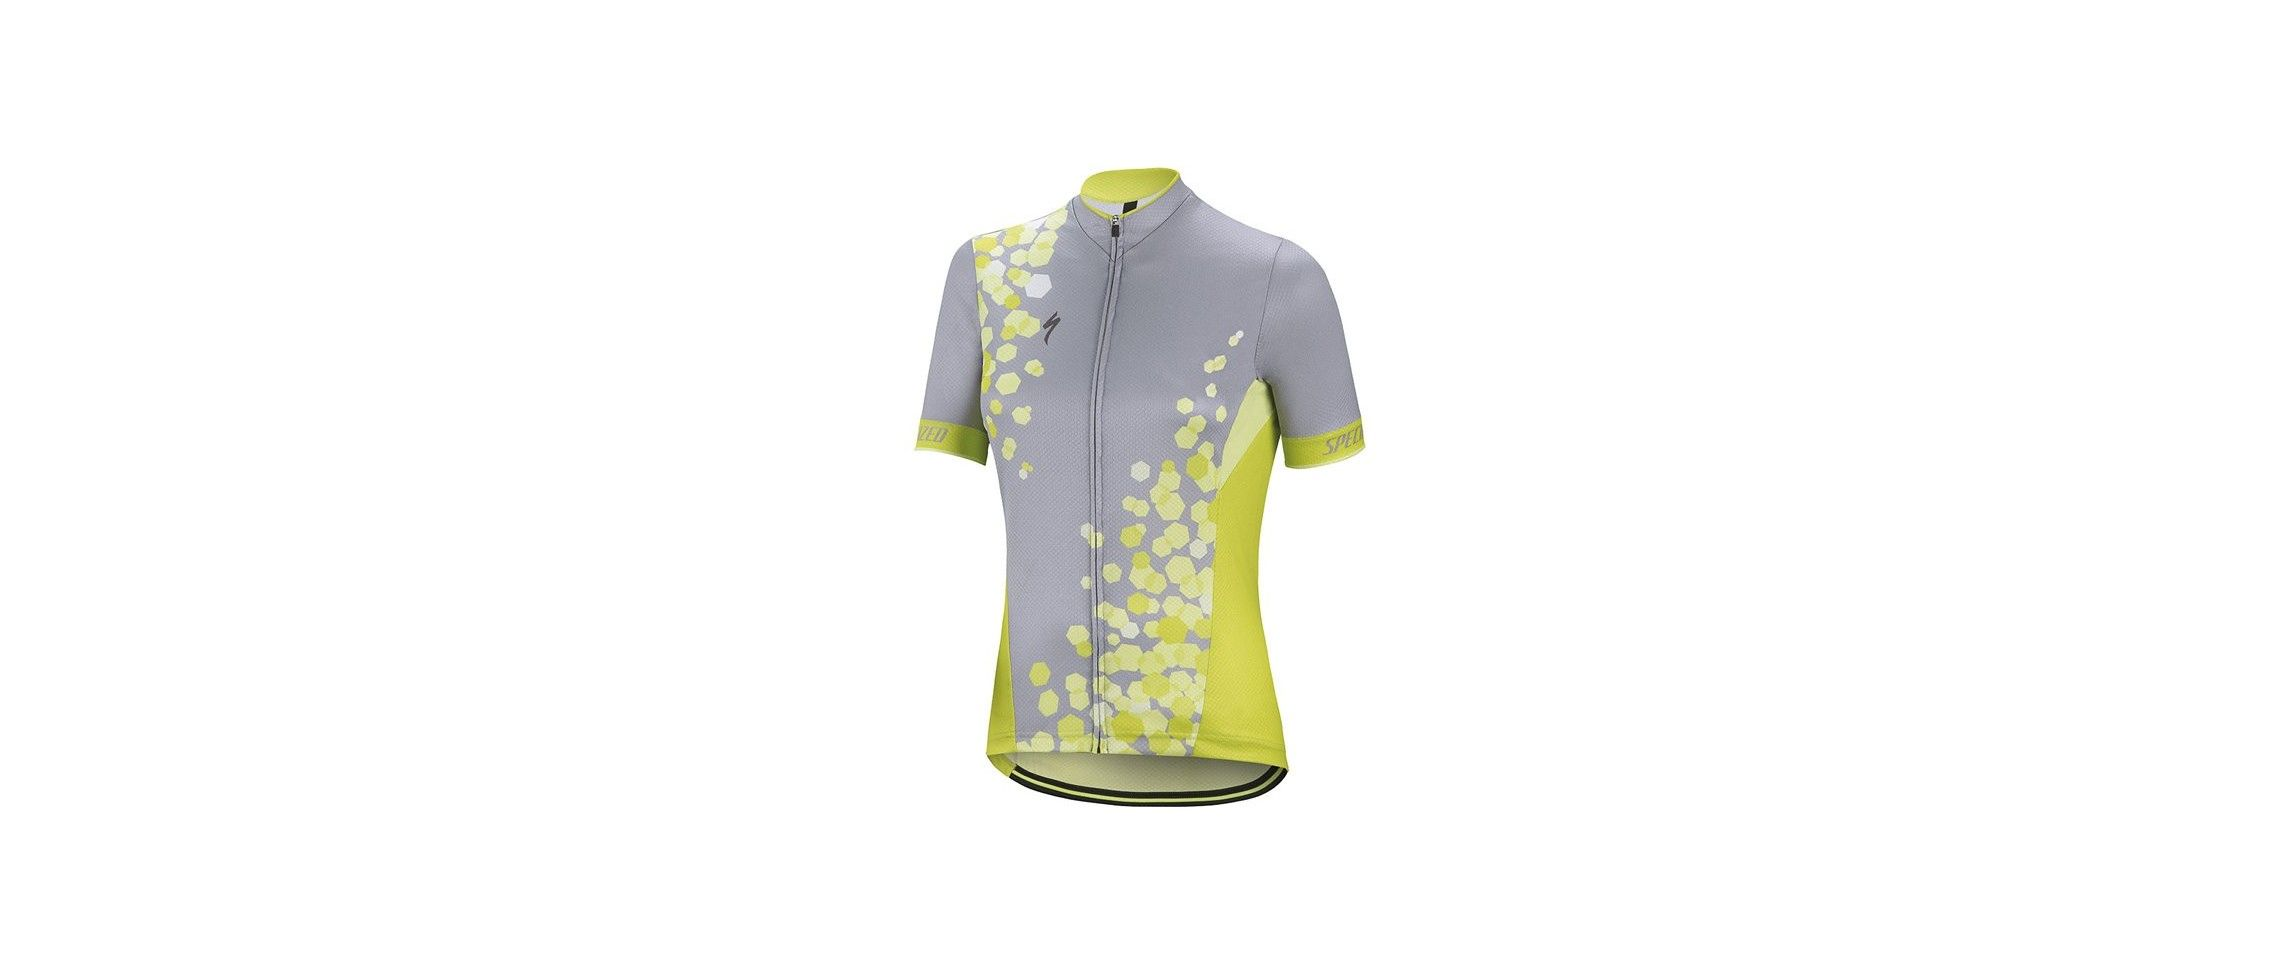 Rbx Comp Maillot Specialized Mujer Gris/Verde Hyper 1 IBKBike.es